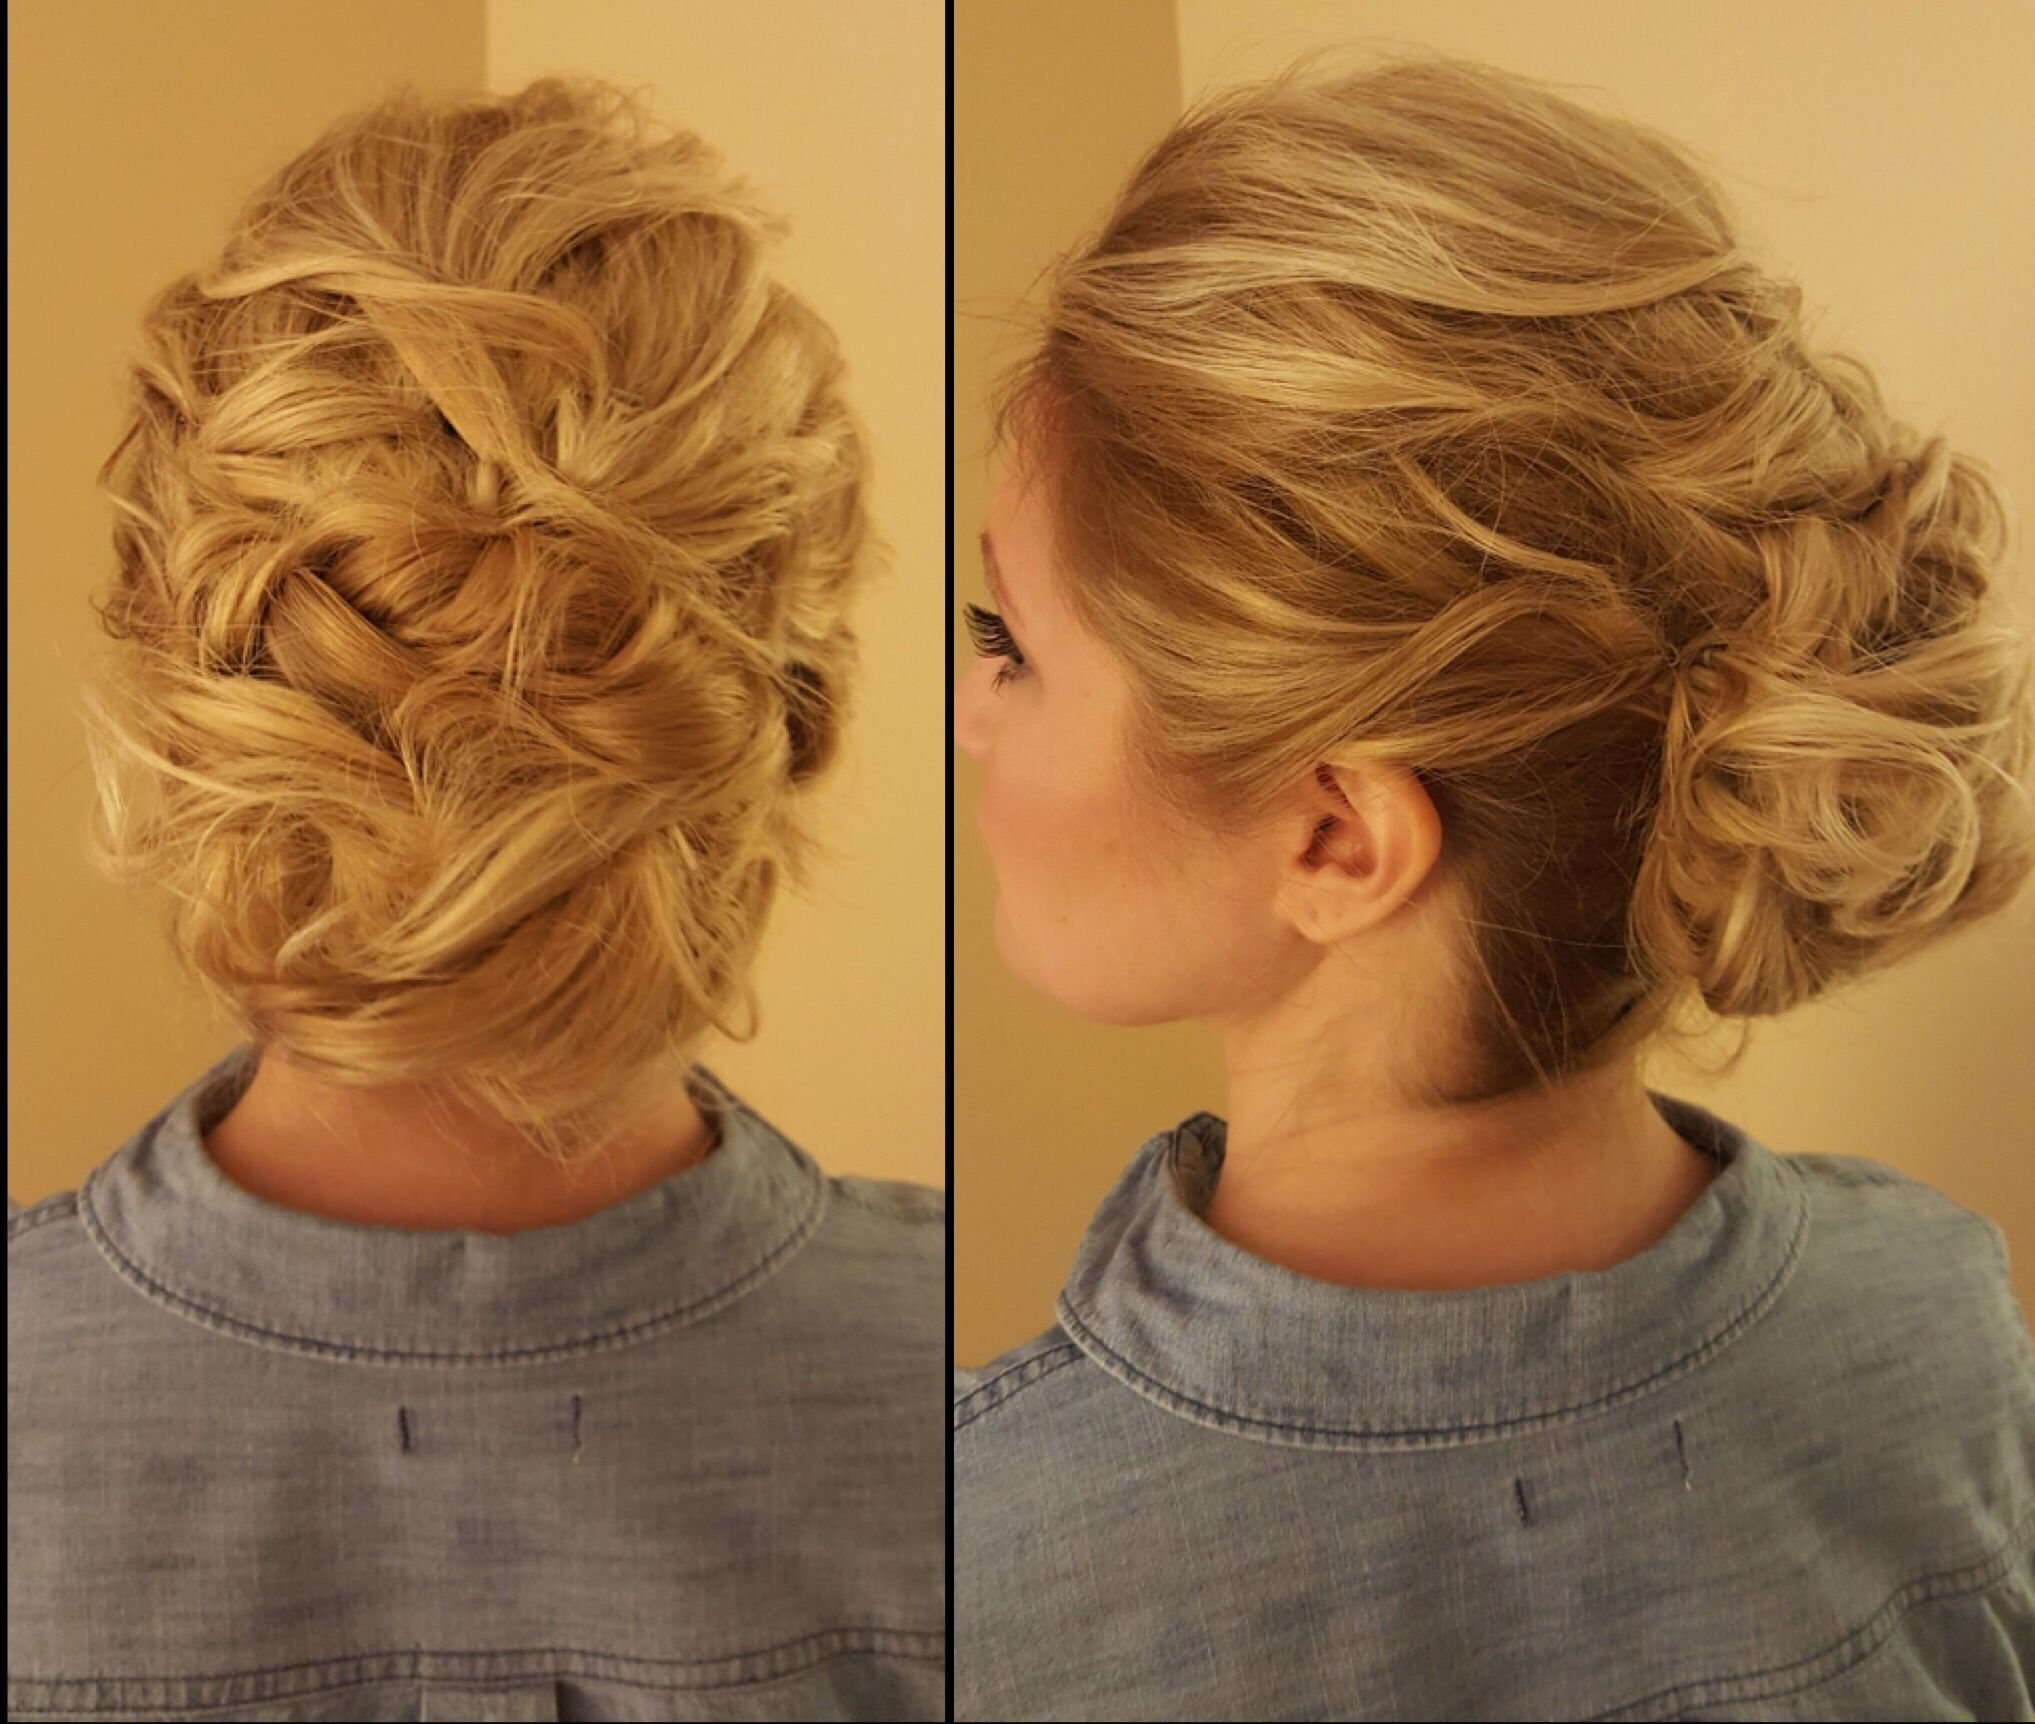 Updo done by Classic Hair and Makeup, Pittsburgh.